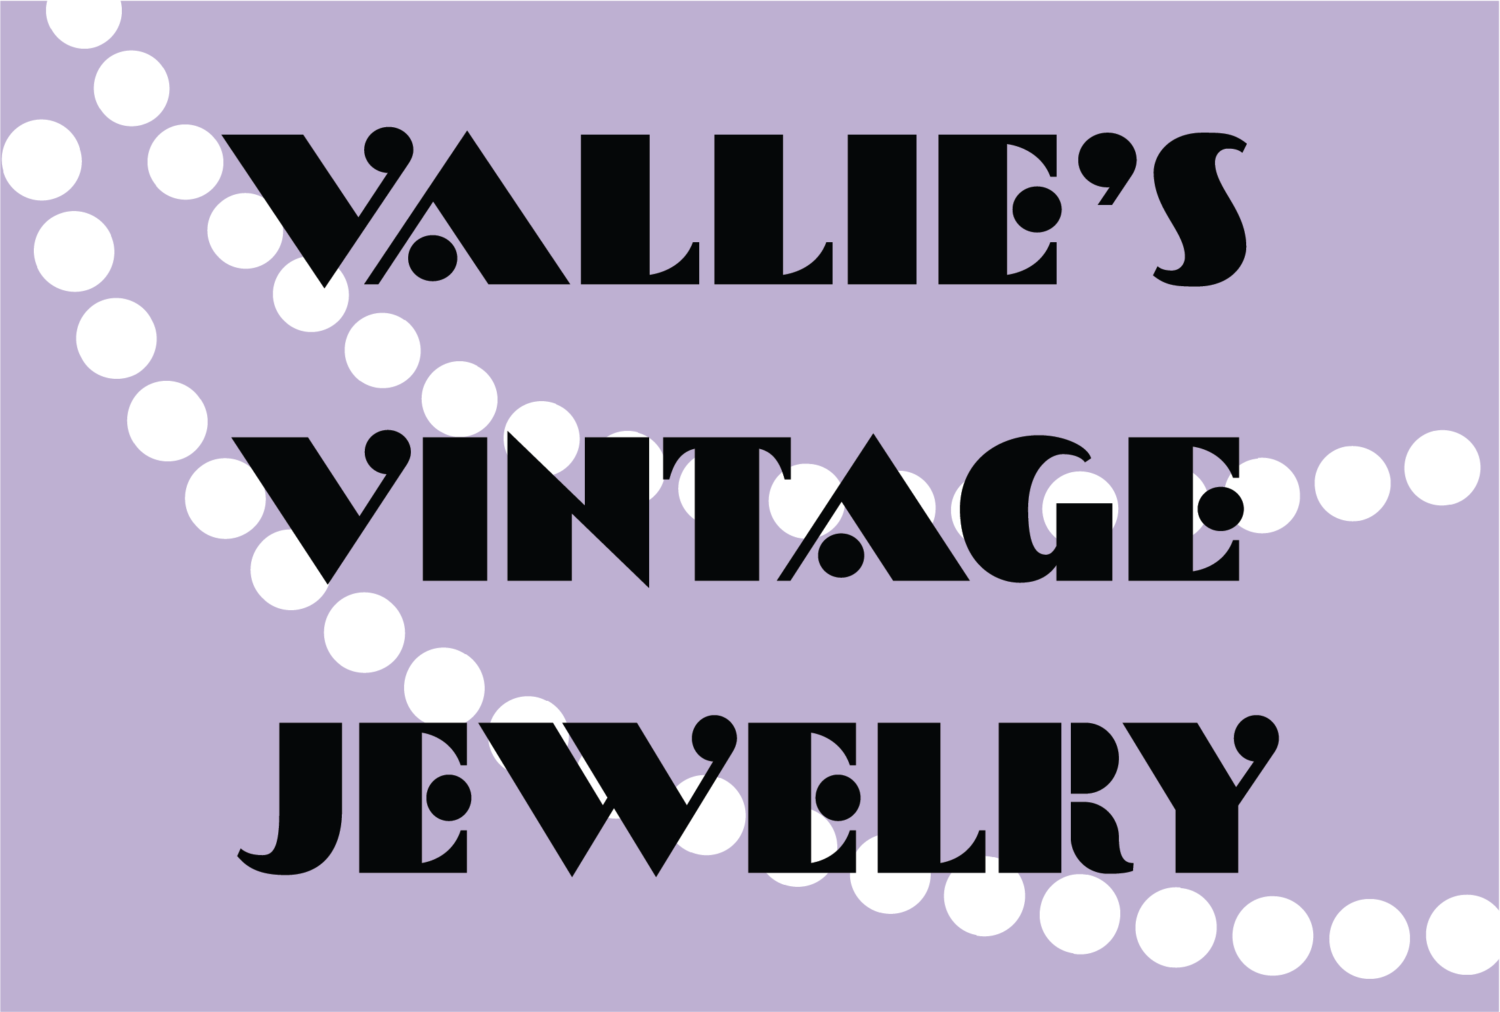 Vallie's Vintage Jewelry